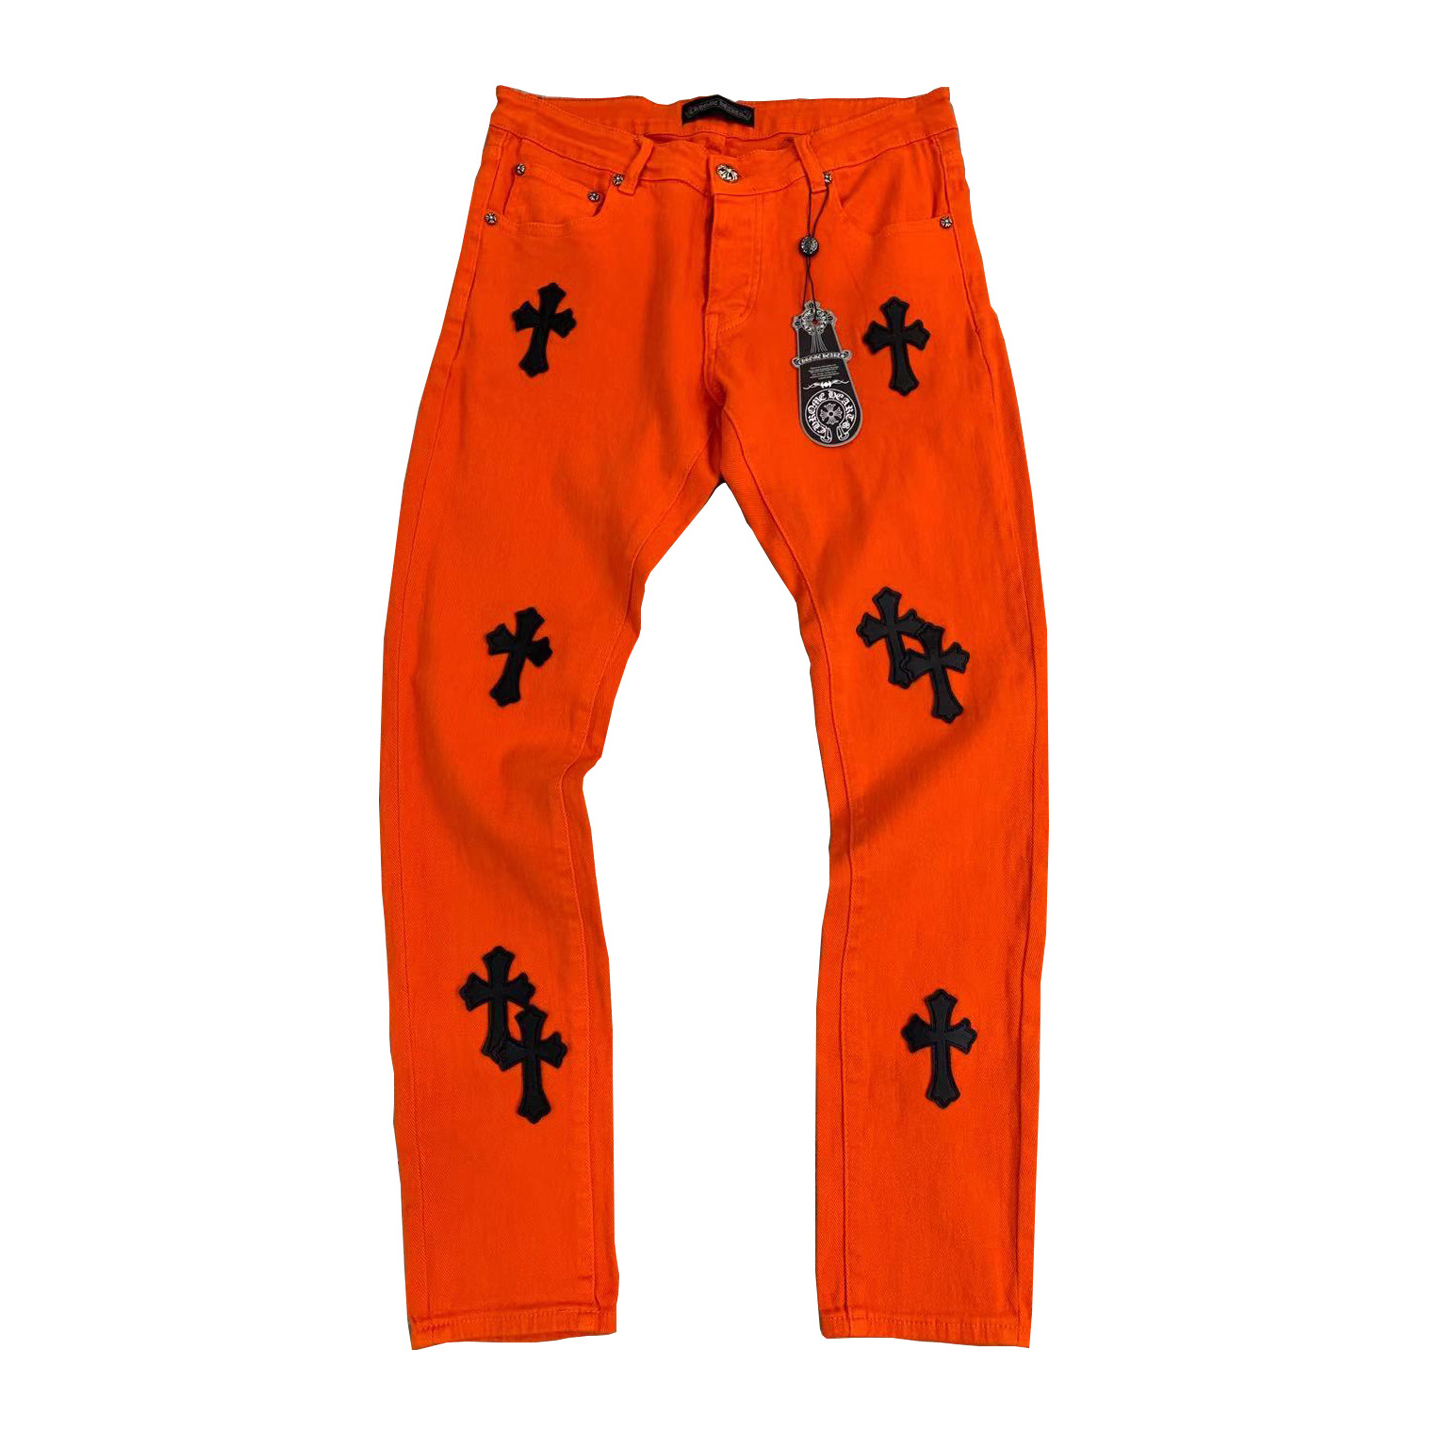 Cross Patch Denim Pants in Red - FashionBeast